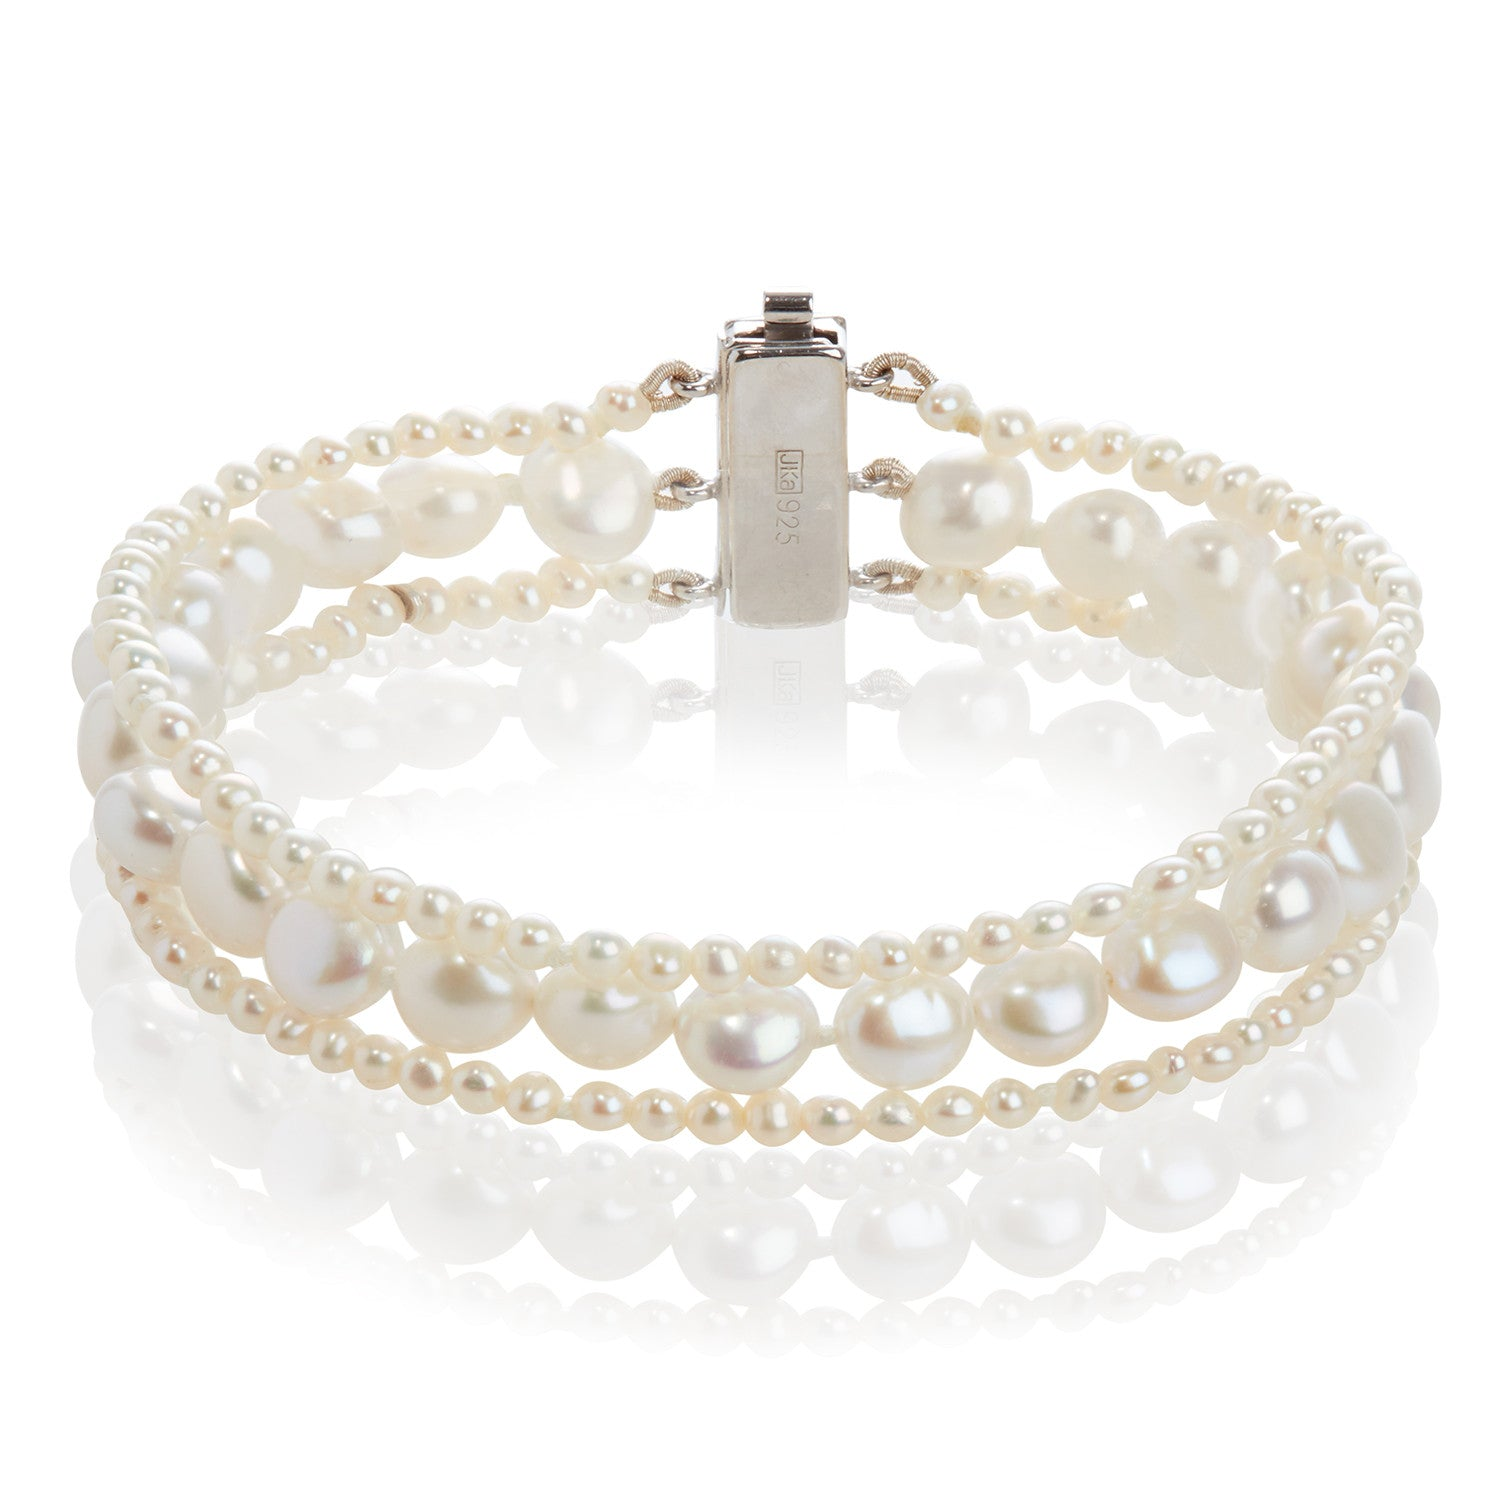 3 Strand Cultured Freshwater White Pearl Mixed Bracelet